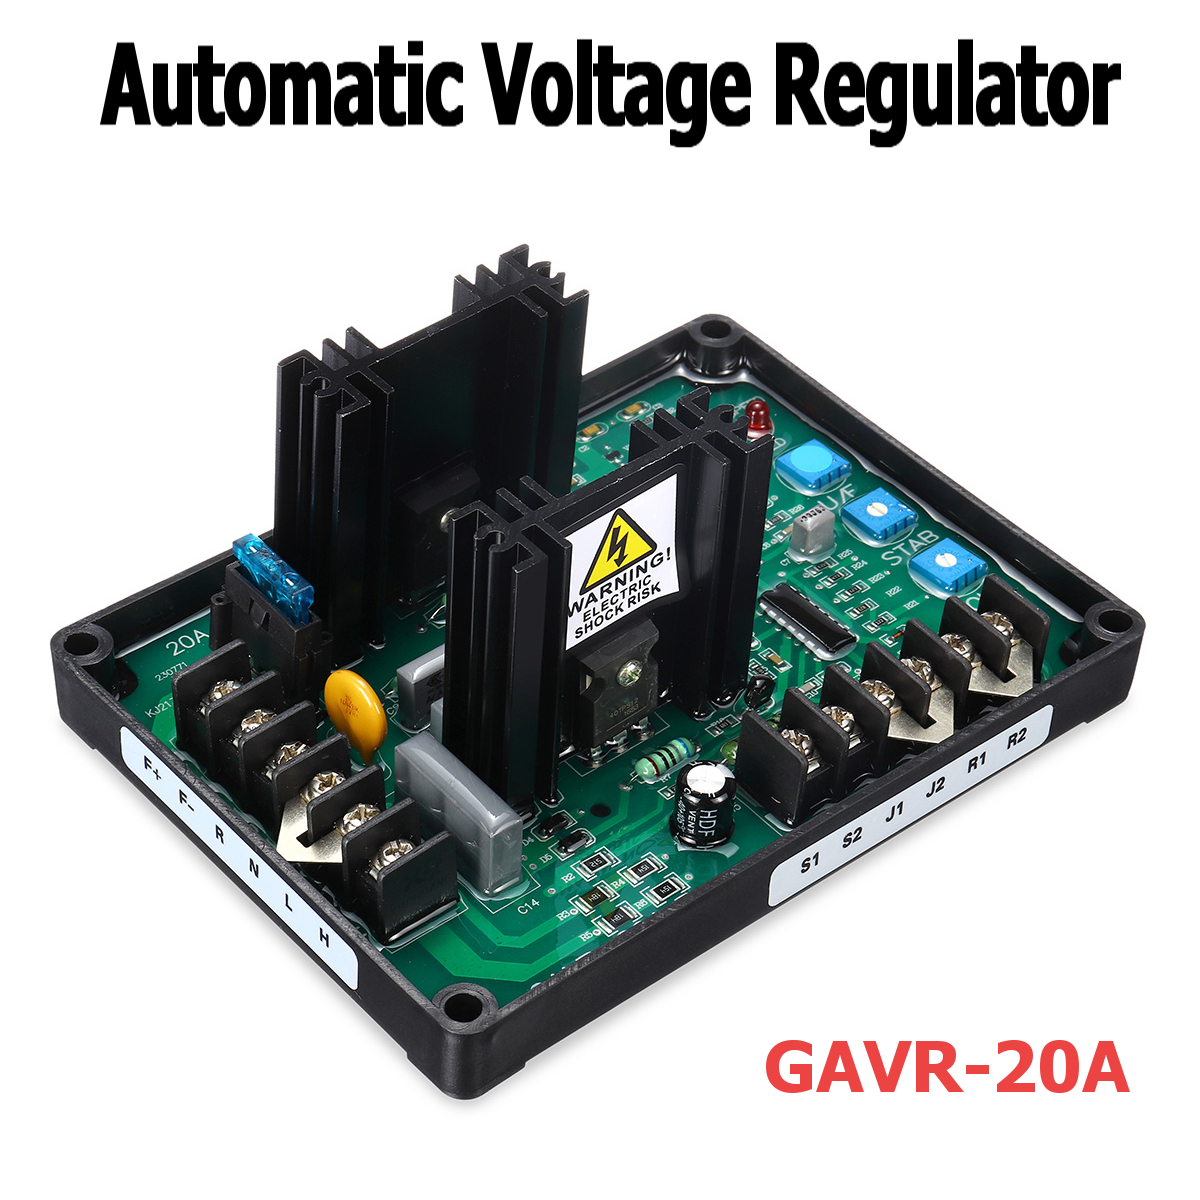 Automatic Voltage Regulator Module GAVR-20A AV Universal Brushless AVR Generator 220/400VAC Frequency Protection EMI Suppression